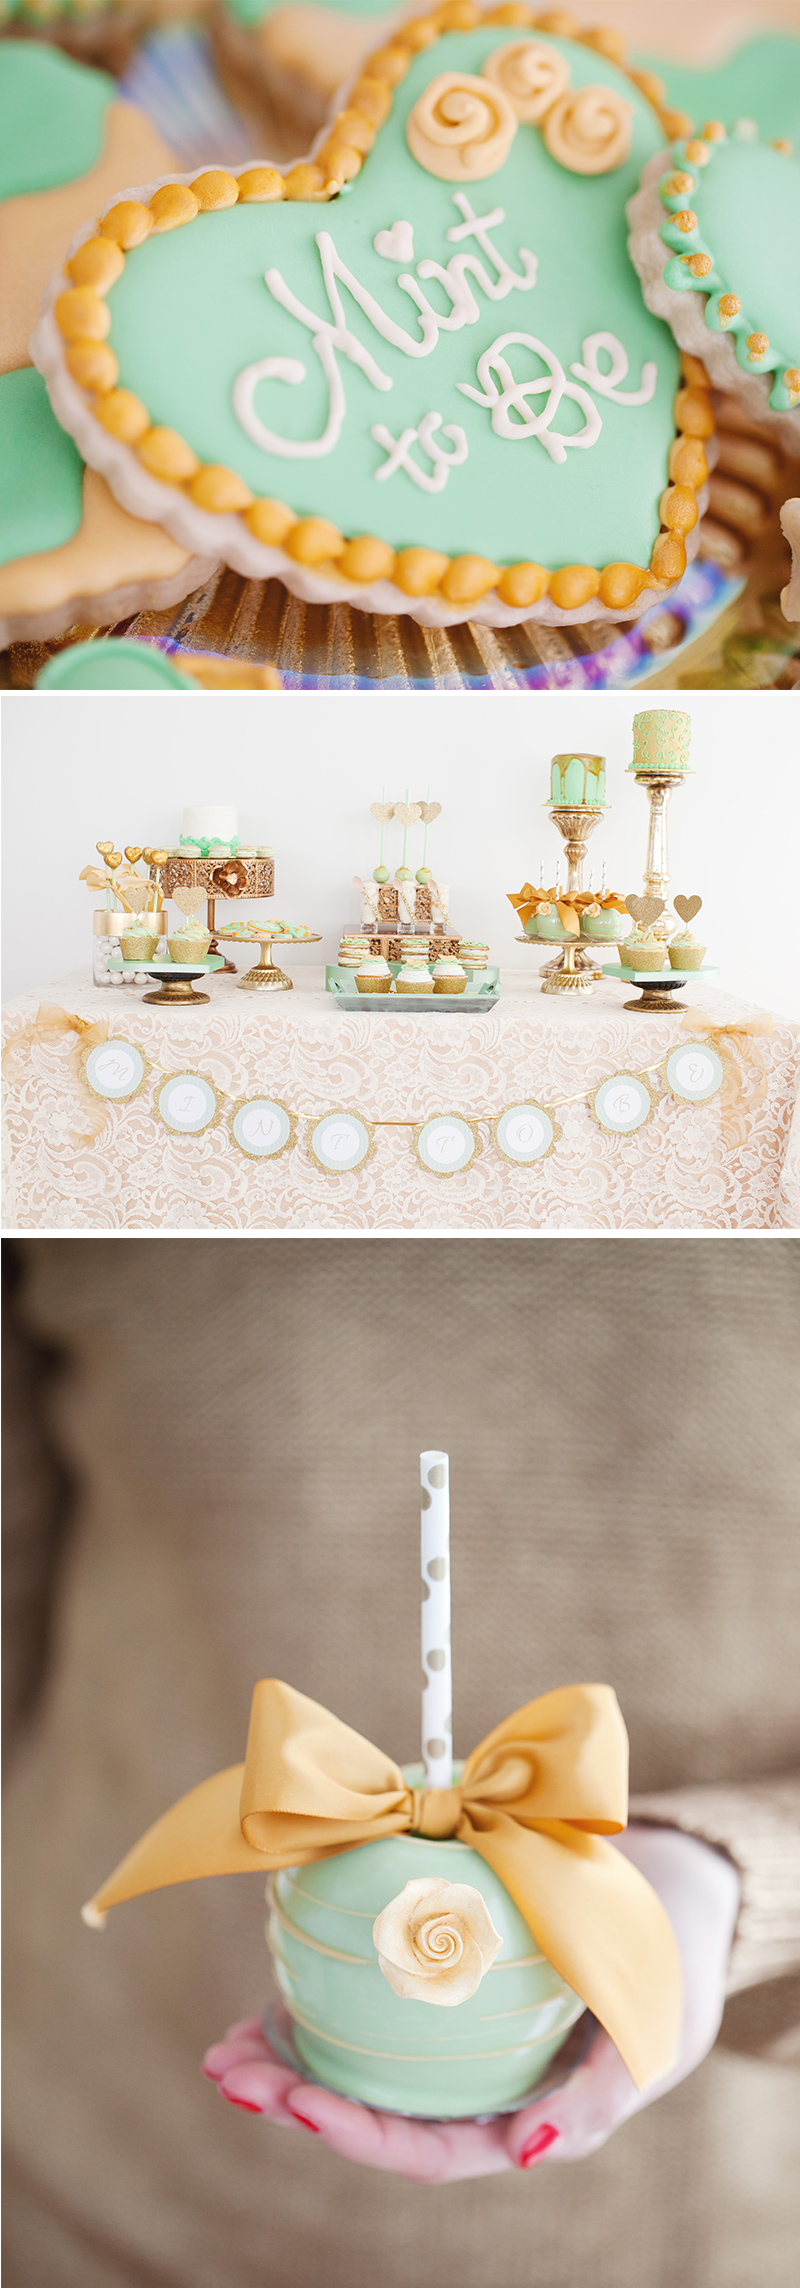 mint-to-be-valentines-day-party-ideas-2